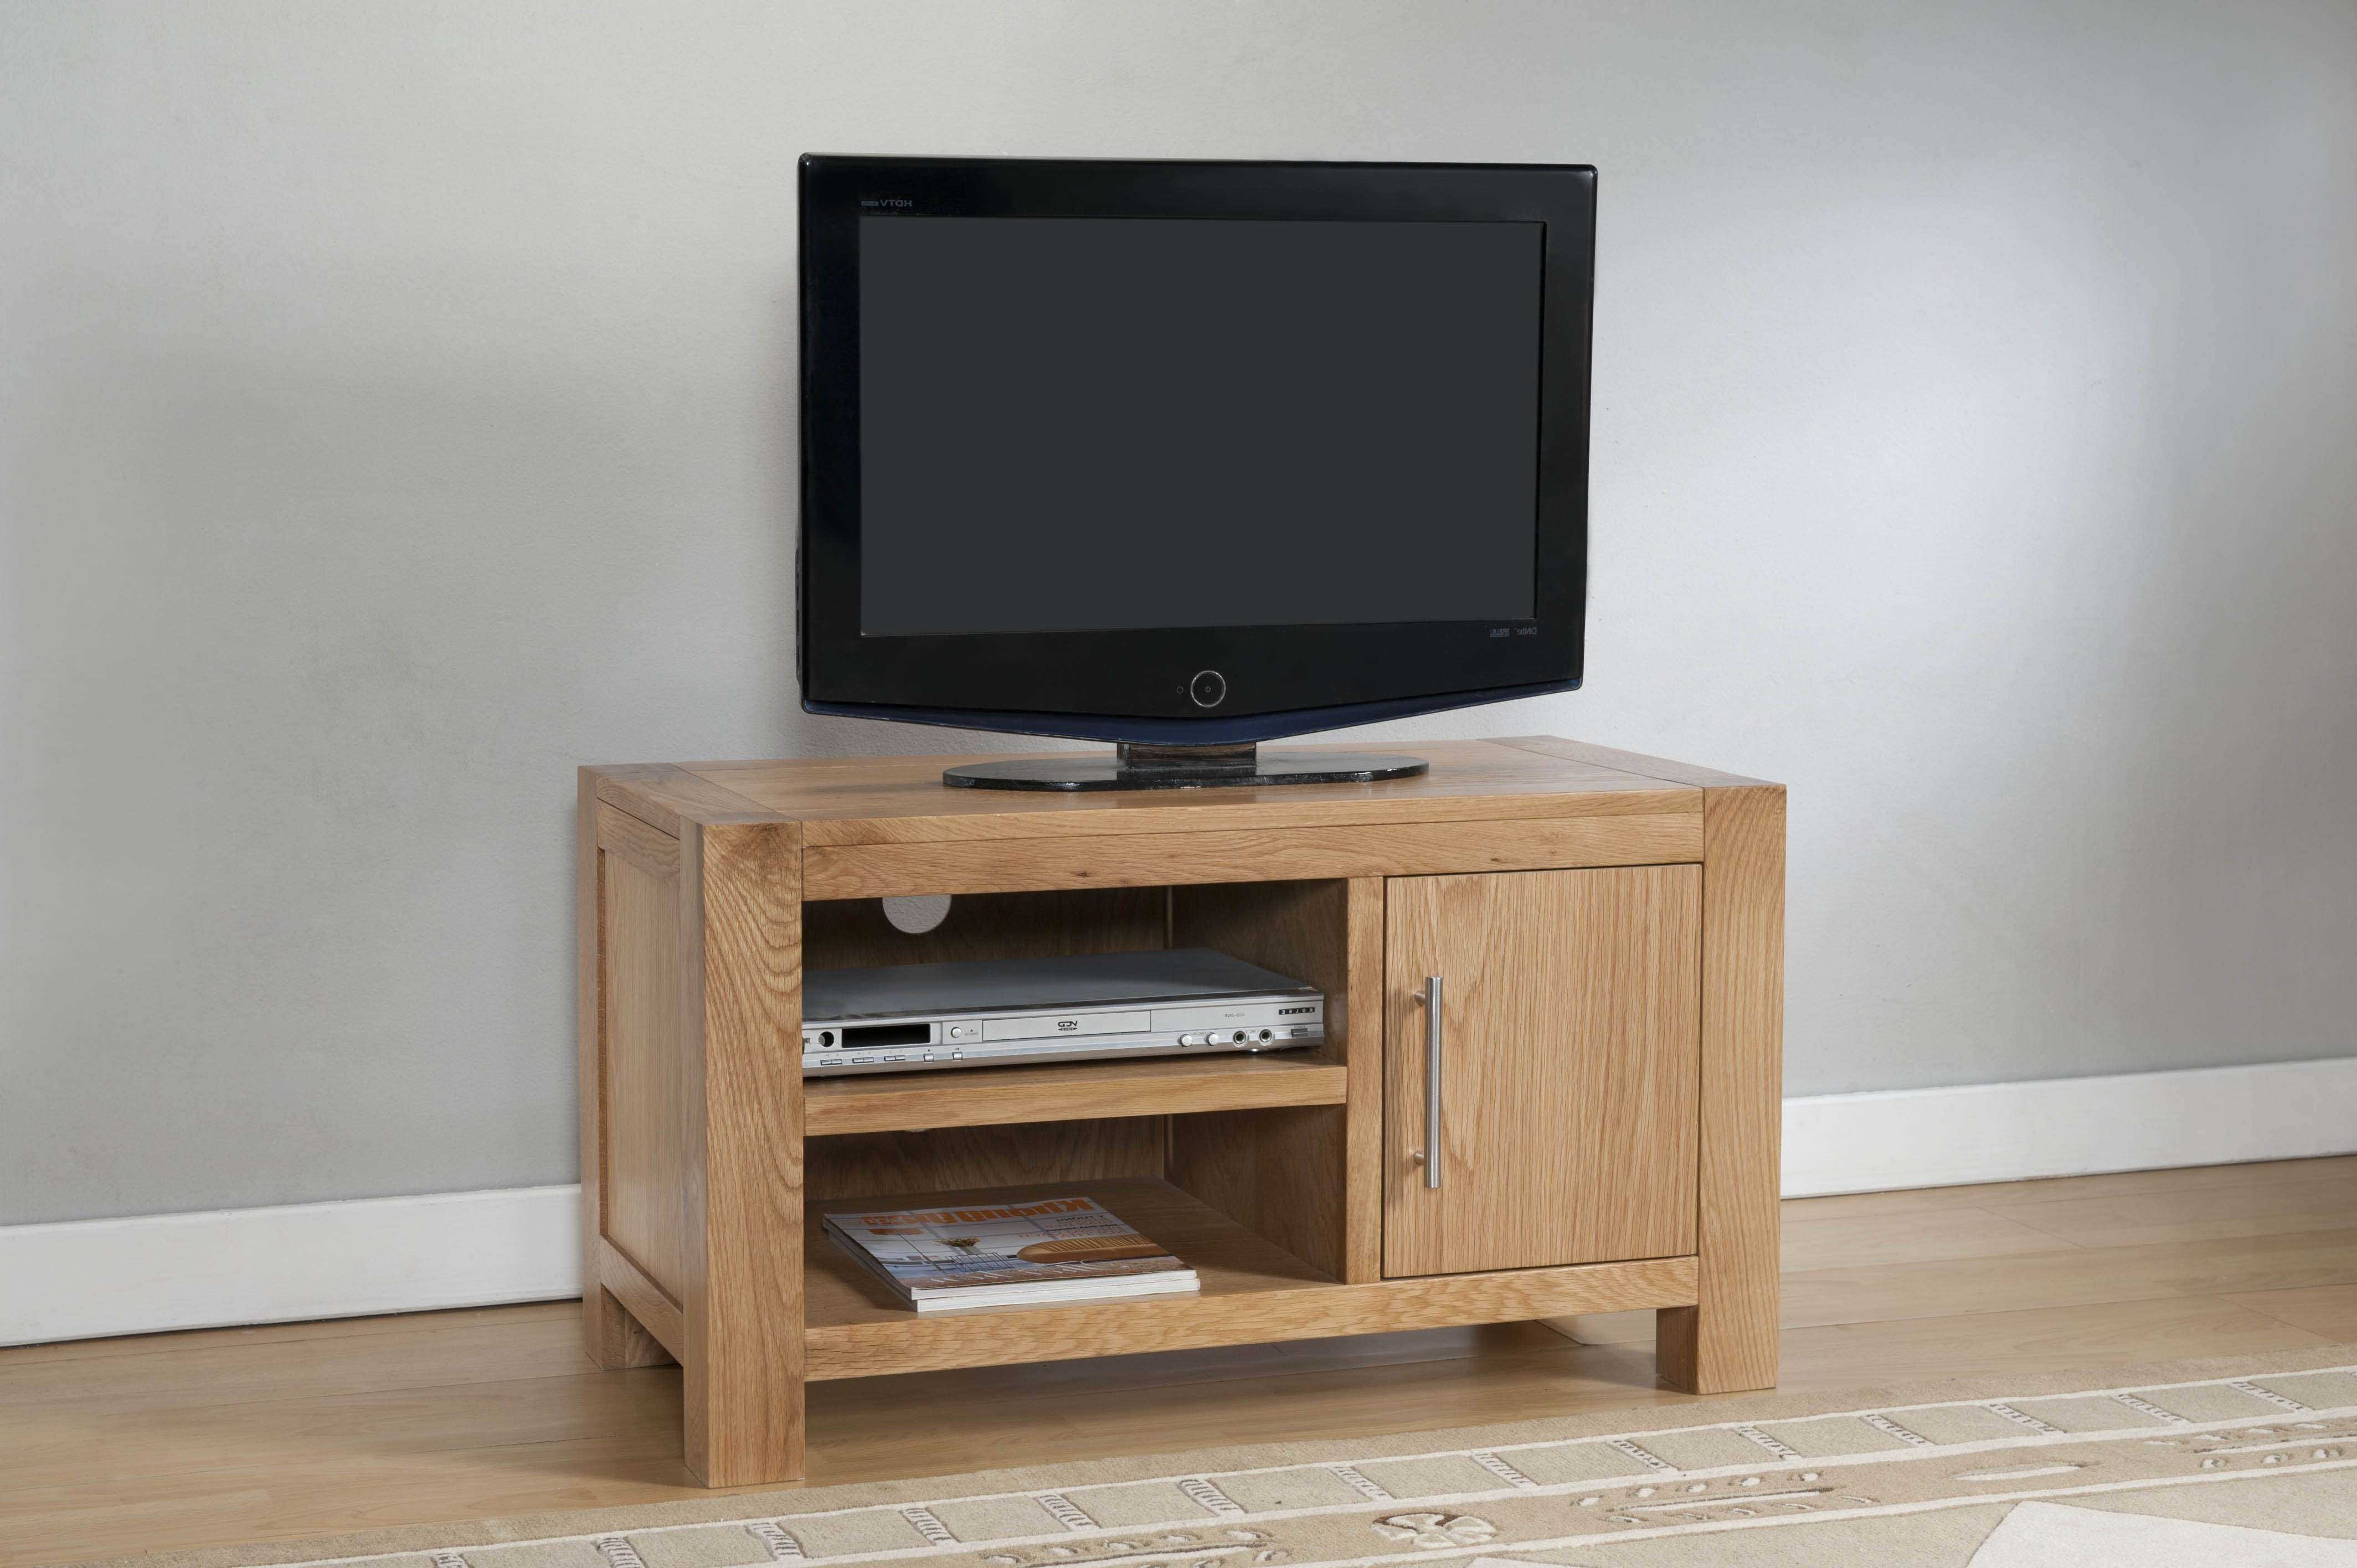 Milano Oak 1 Door Tv Stand With Shelf | Oak Furniture Solutions For Oak Tv Cabinets With Doors (View 10 of 20)